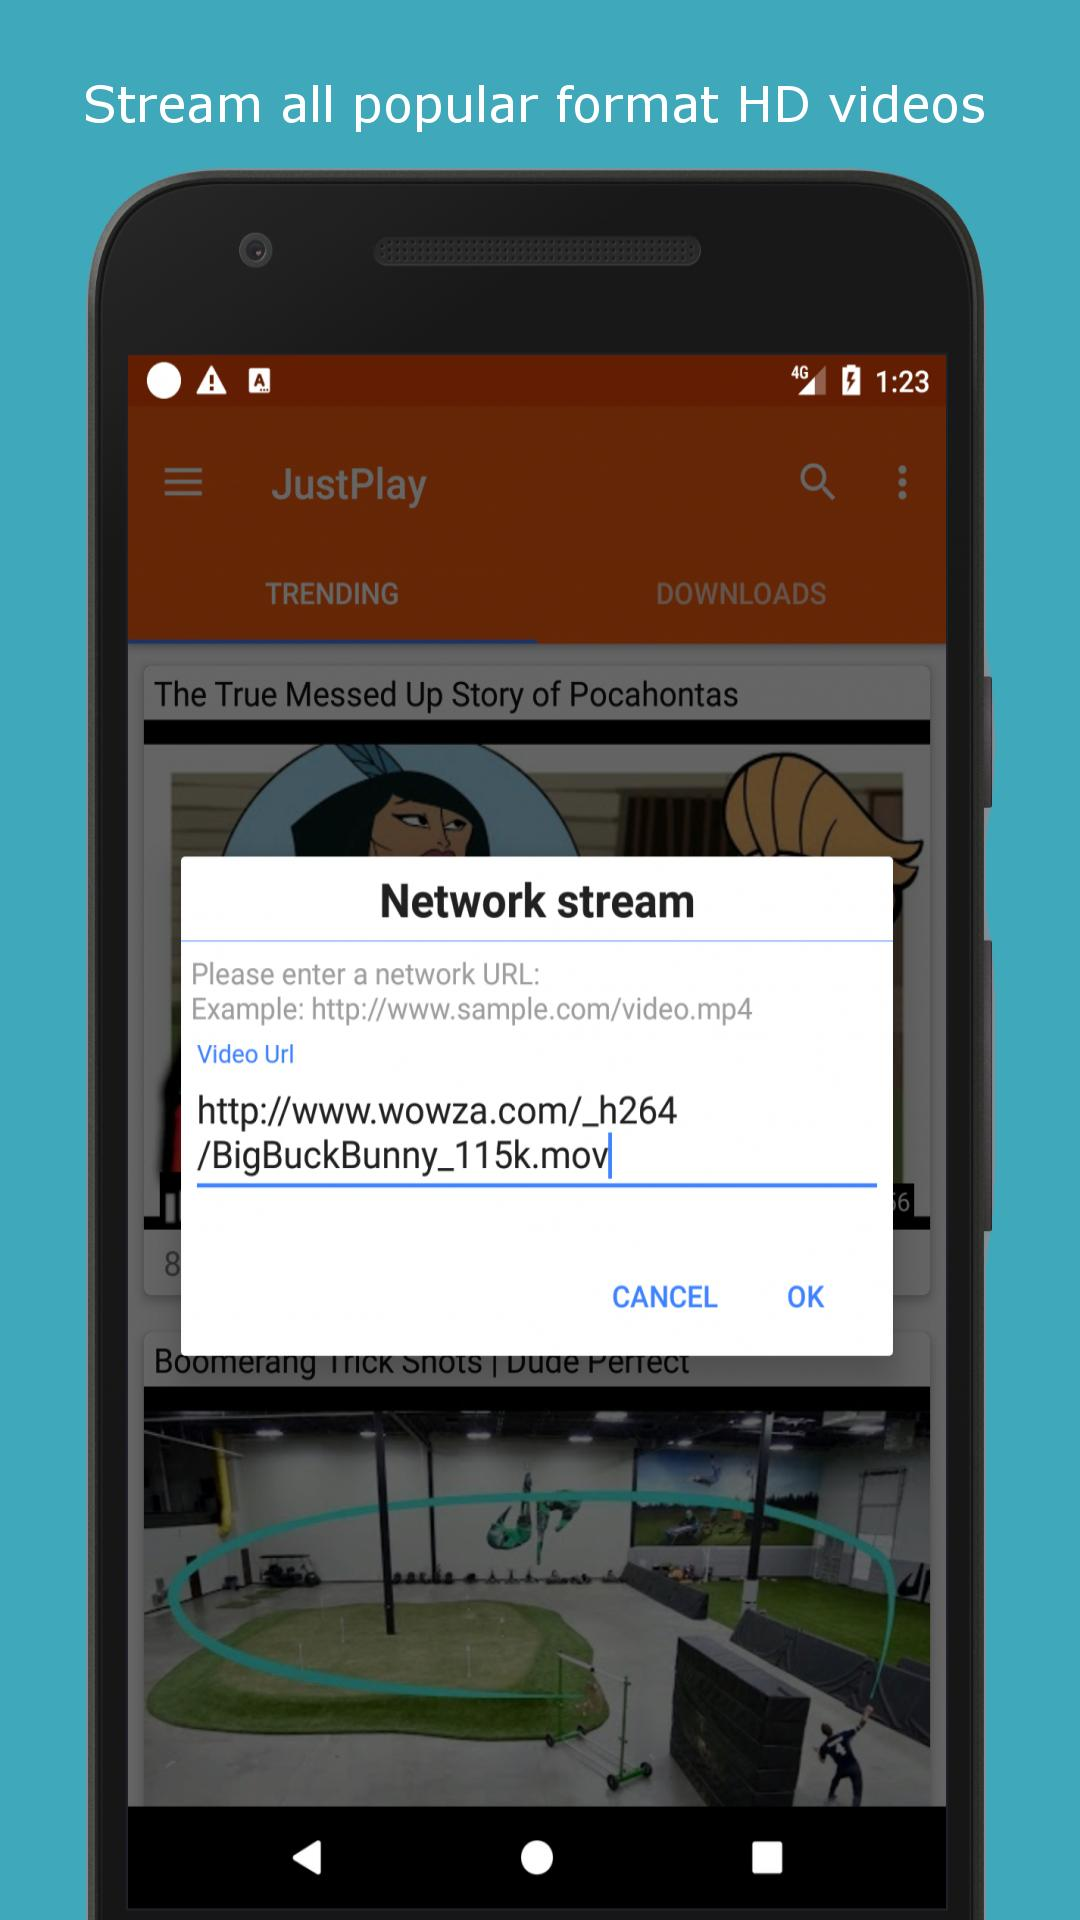 Felsebiyat Dergisi – Popular Just Play Online Video Player Apk